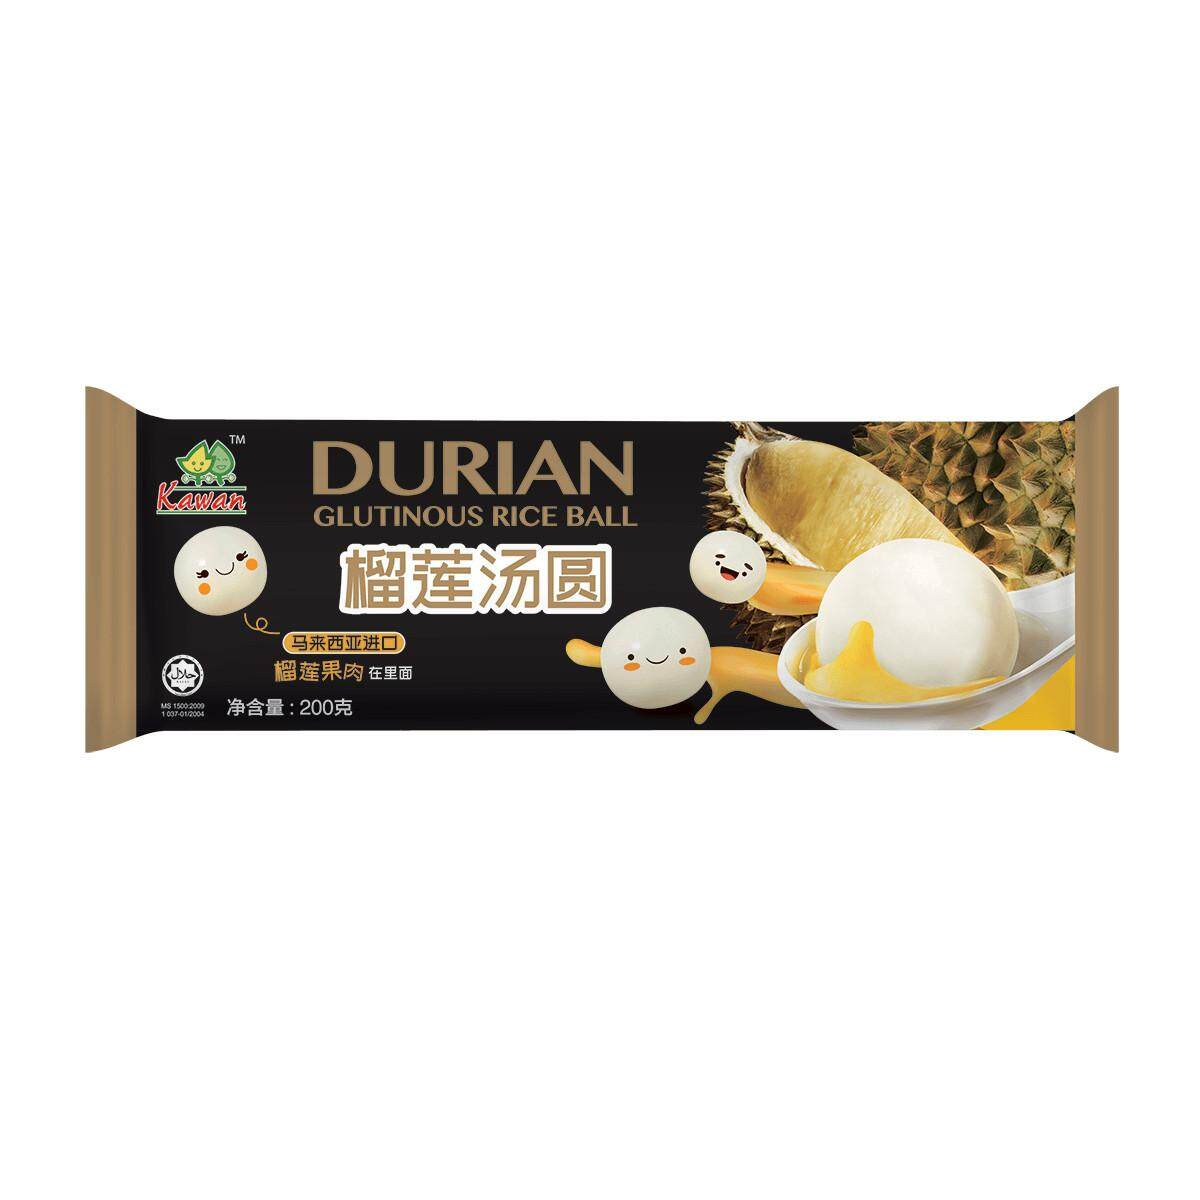 [Limited Edition] KG PASTRY Durian Tang Yuan (Glutinous Rice Ball) 10 pcs